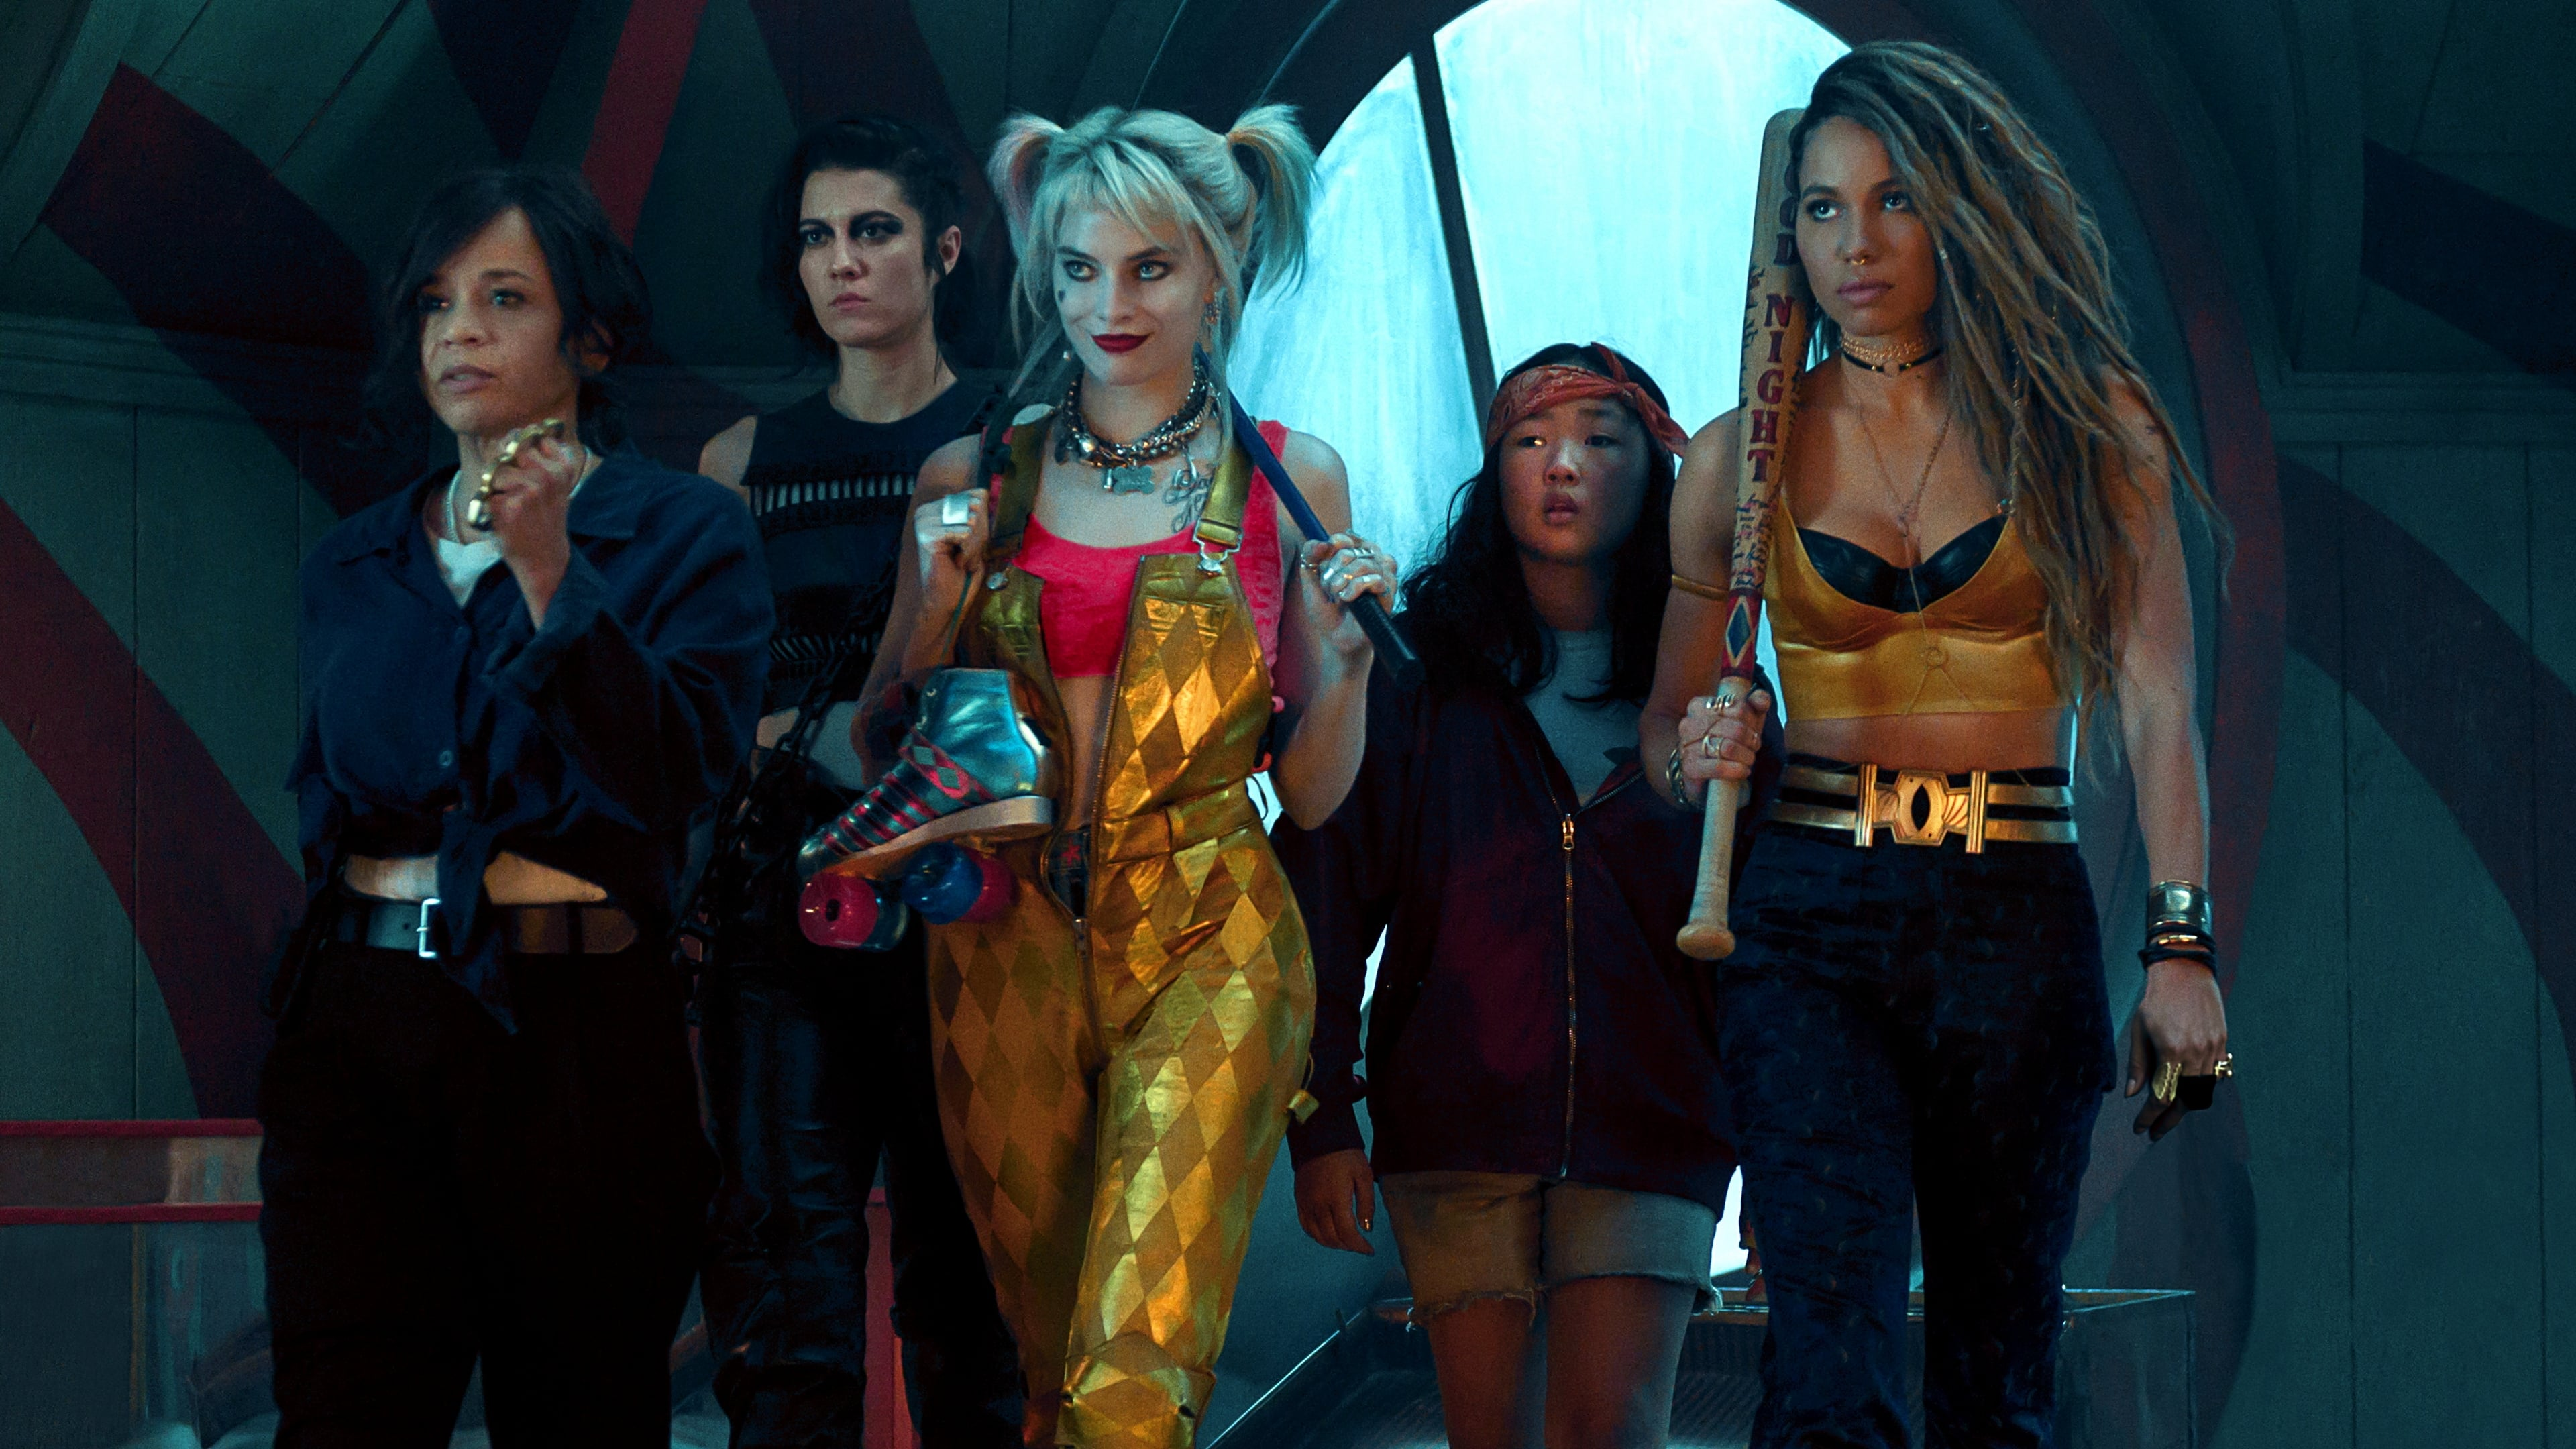 Birds of Prey (and the Fantabulous Emancipation of One Harley Quinn) movie free download